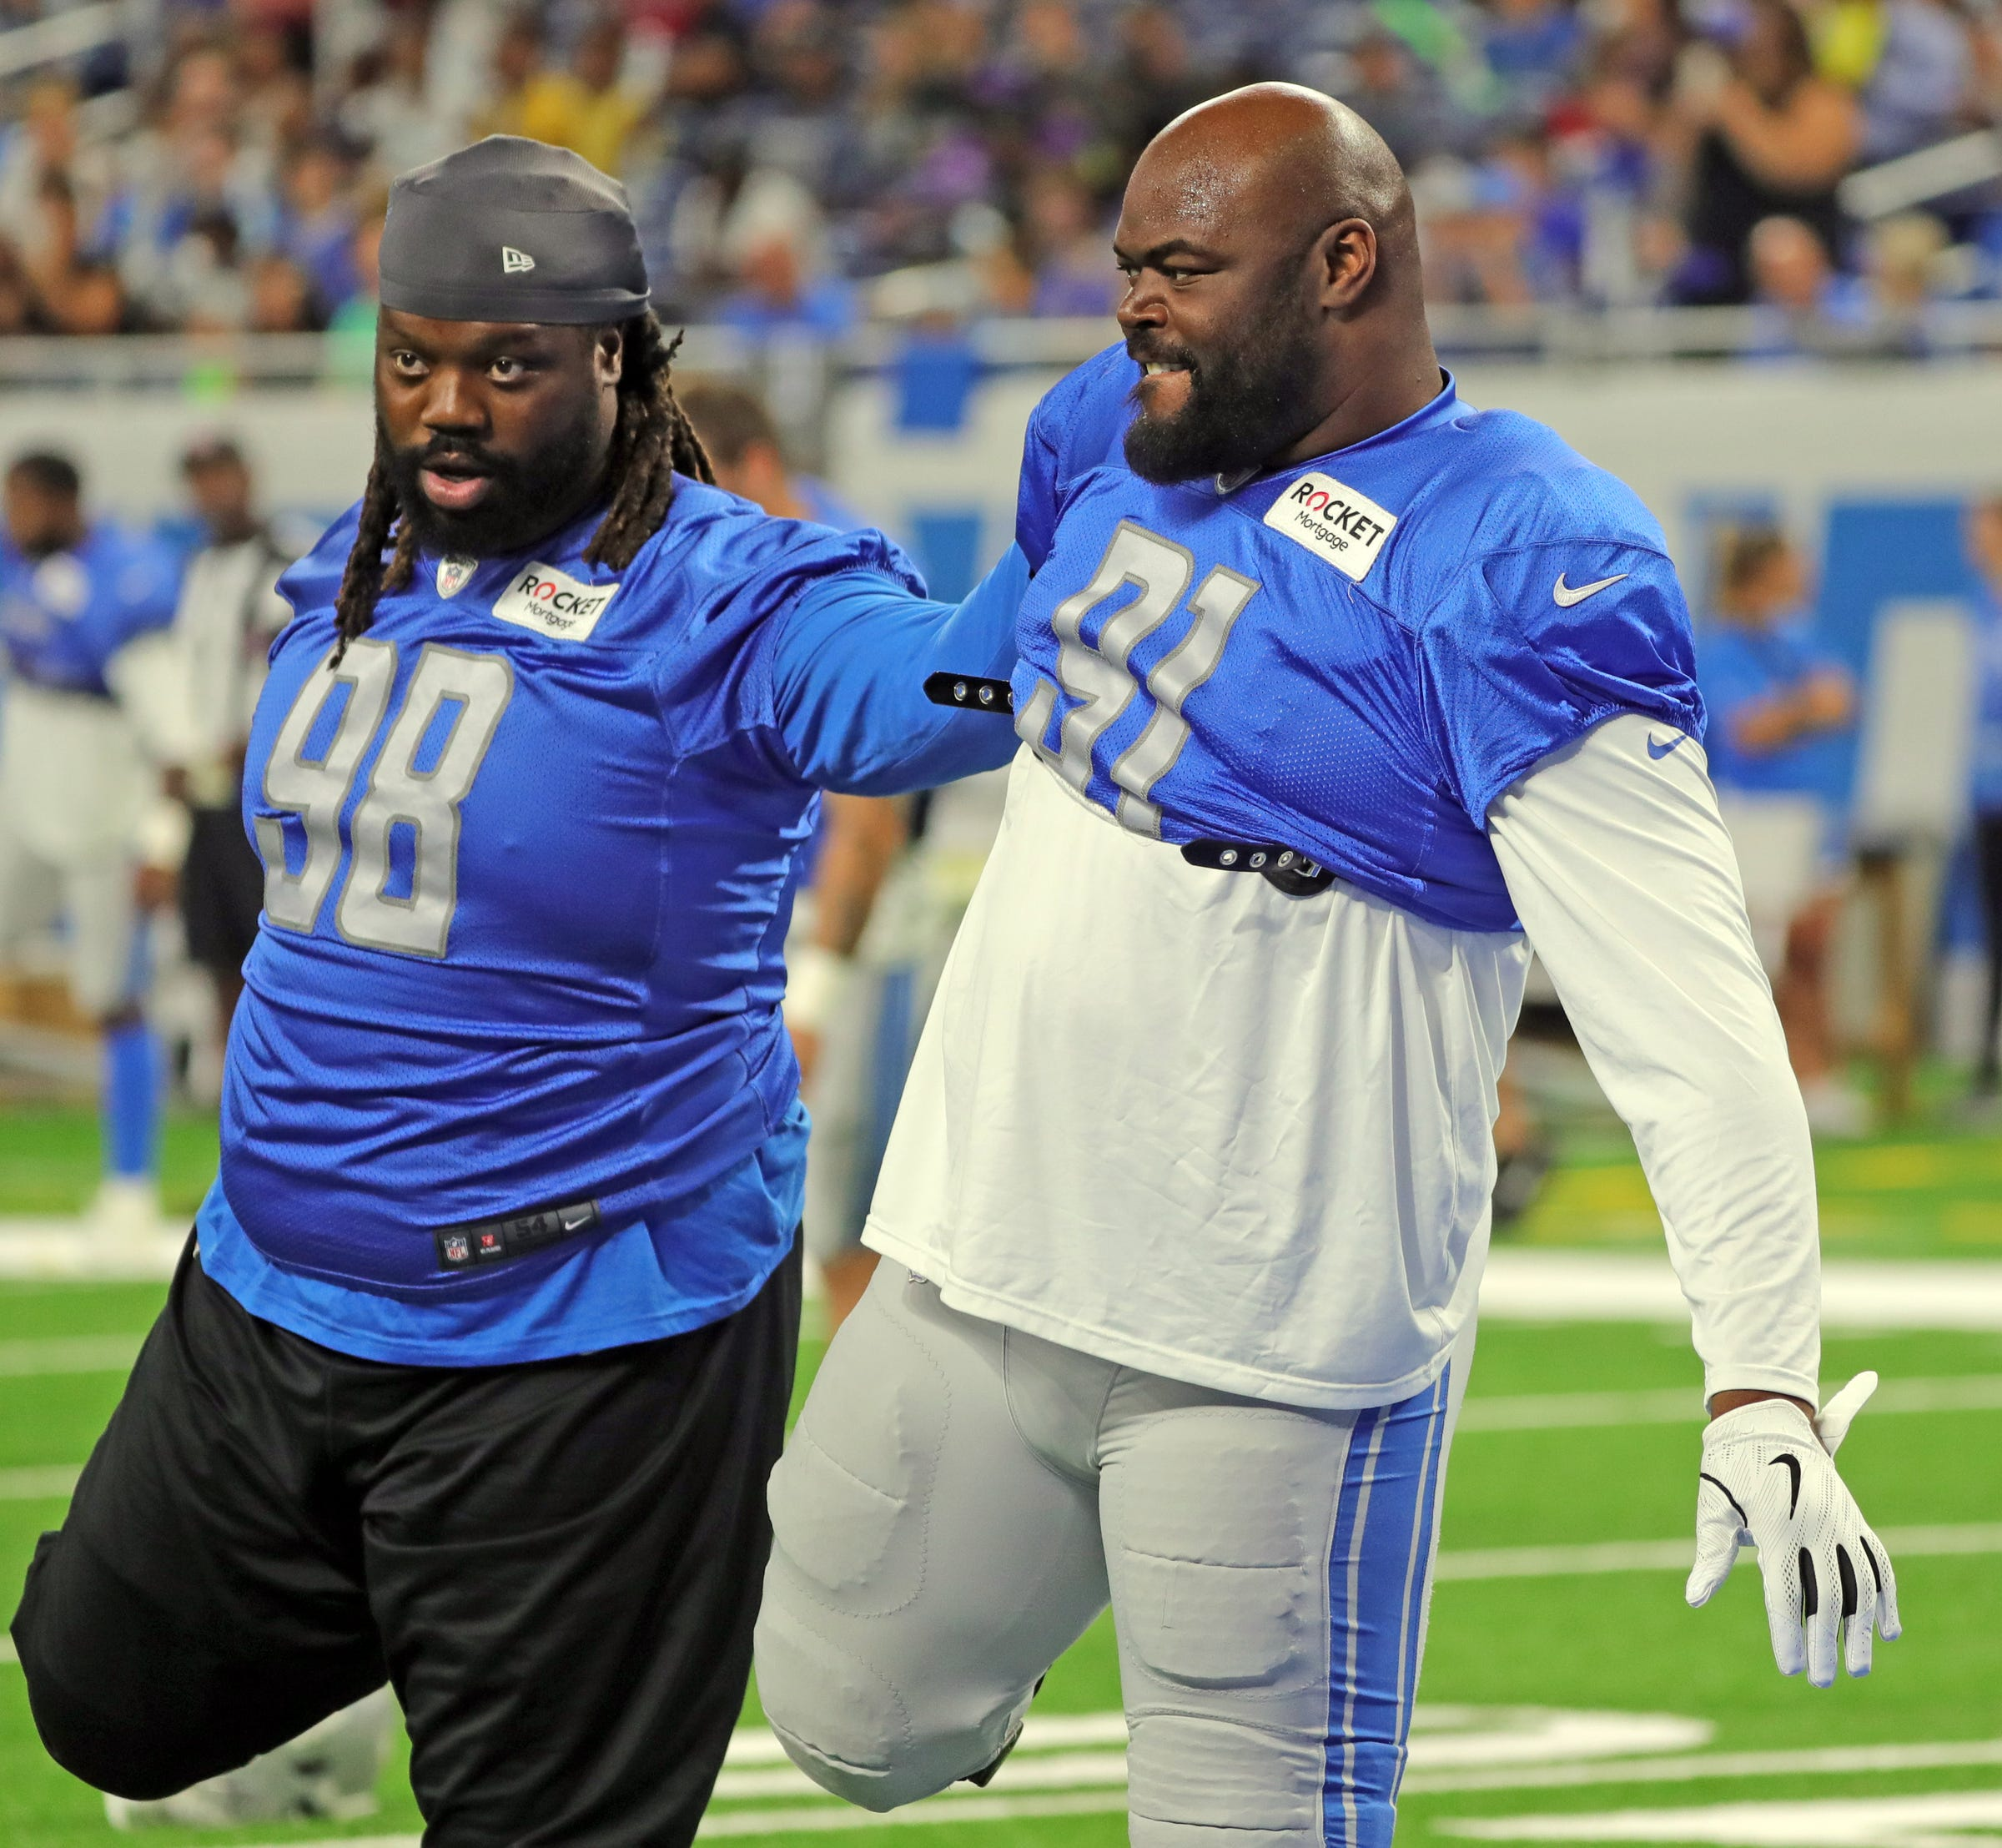 Detroit Lions have talented DL, but team chemistry may take longer than normal